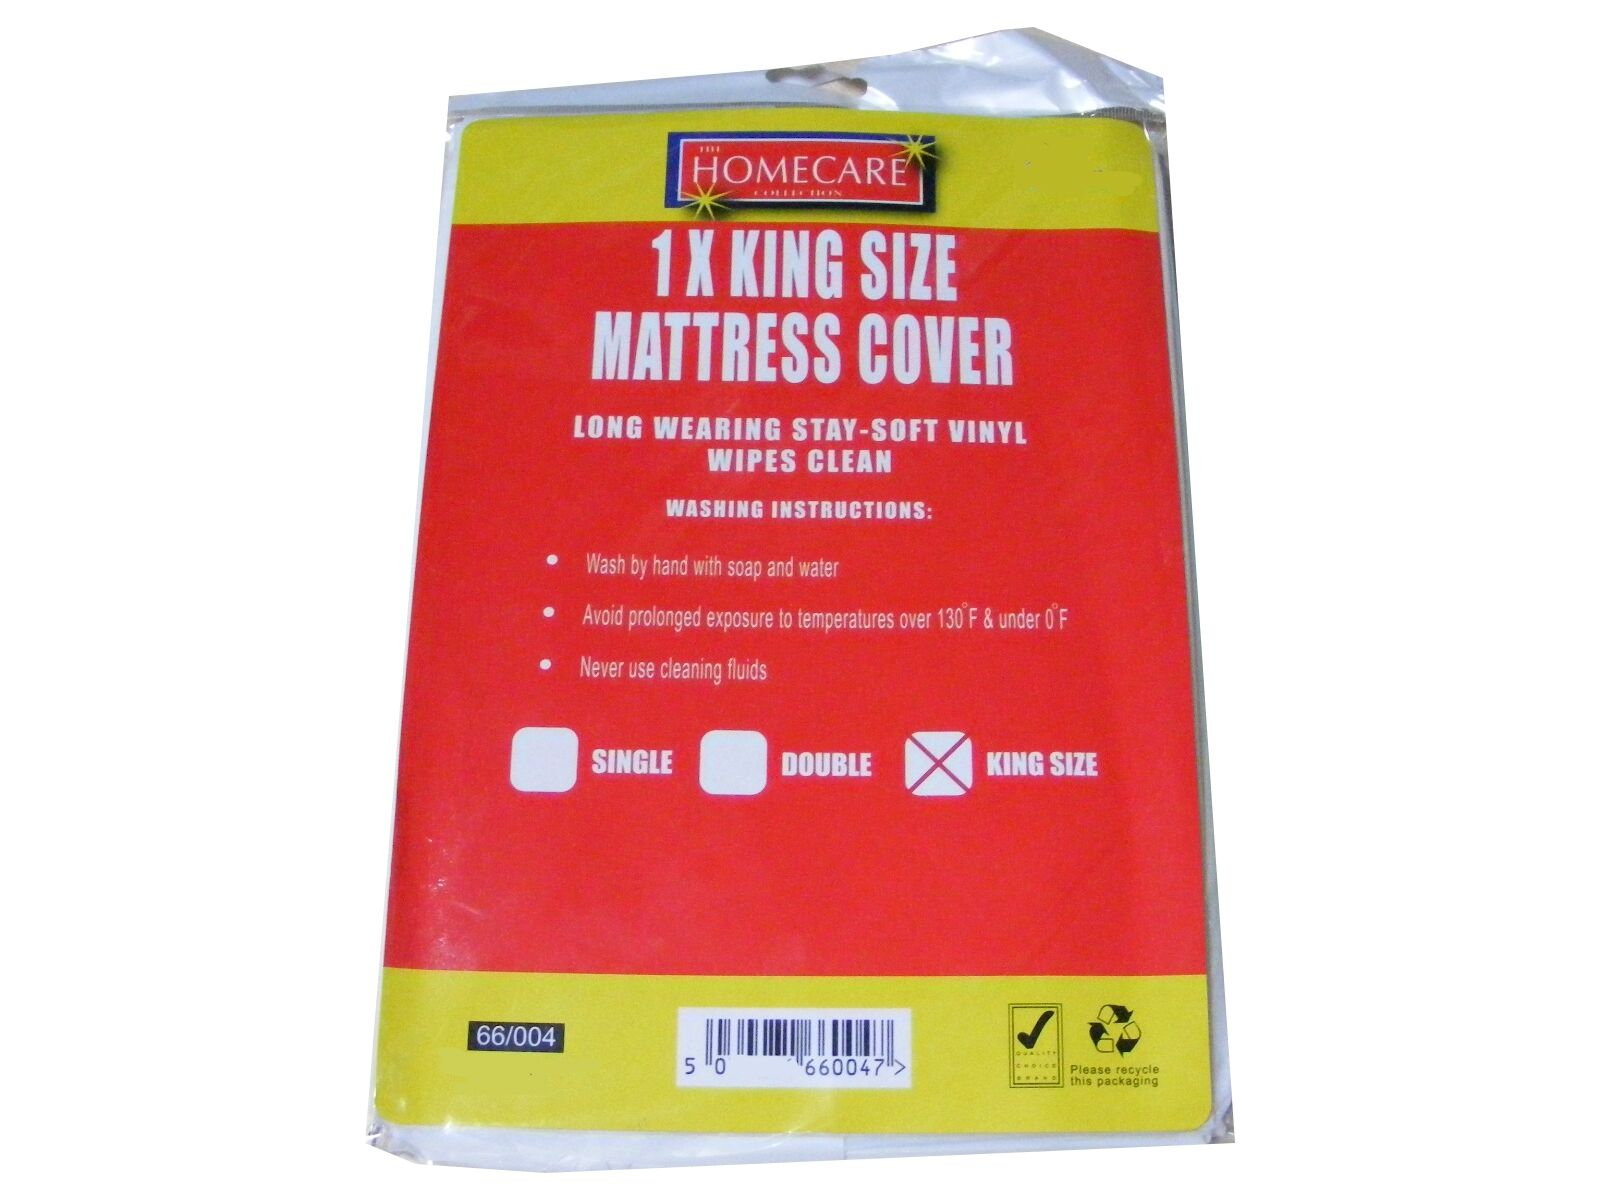 10 x KING Größe BED WETTING VINYL PLASTIC FITTED MATTRESS COVER SHEET PROTECTOR